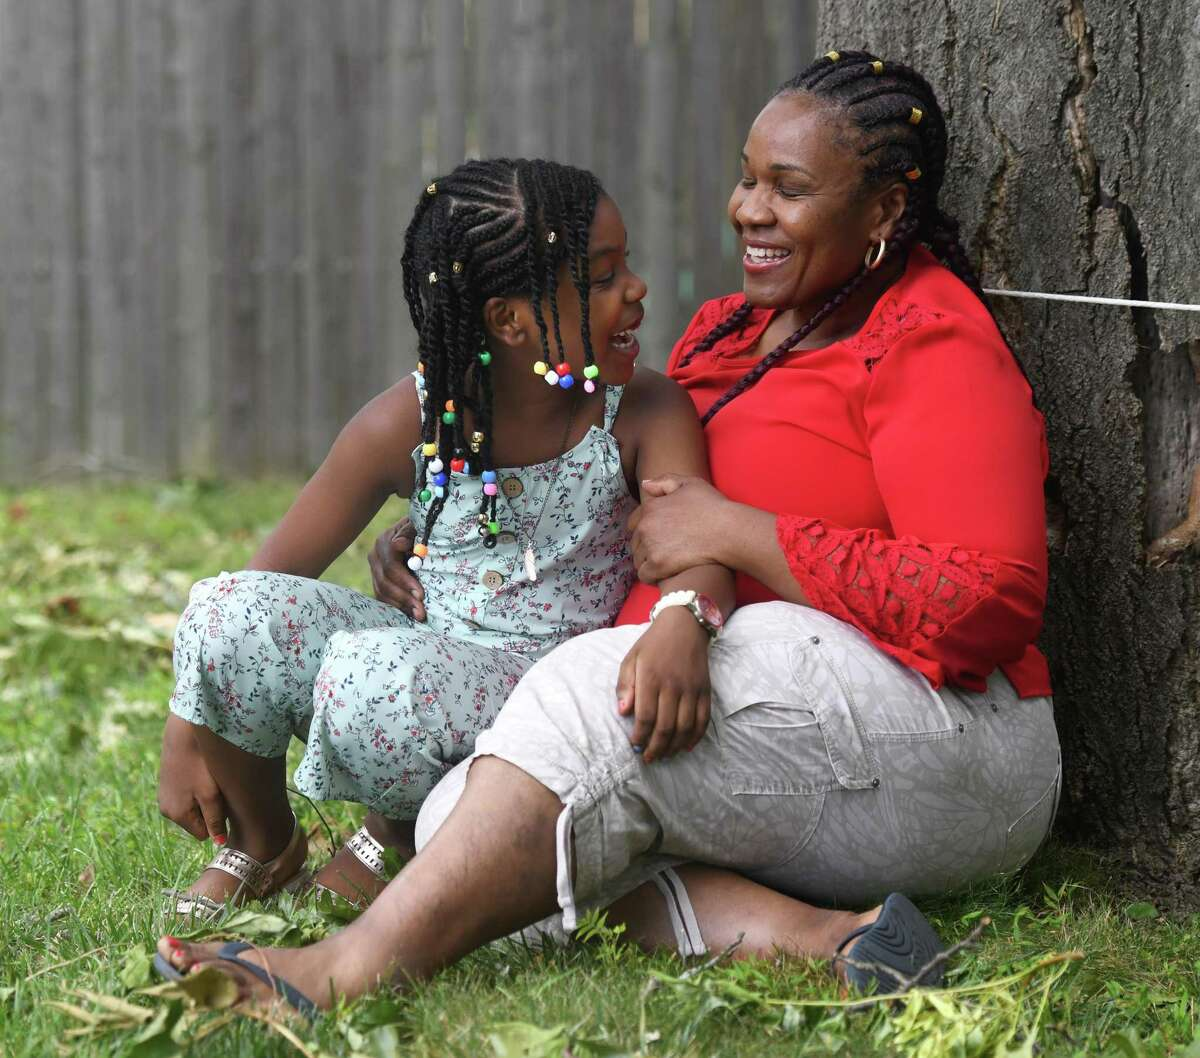 Ghislaine Germain poses with her daughter, Regina Renodo, 7, at their home in Stamford, Conn. Thursday, Aug. 6, 2020. Renodo was rescued from drowning off West Beach by a police officer and emergency room nurse in early July.